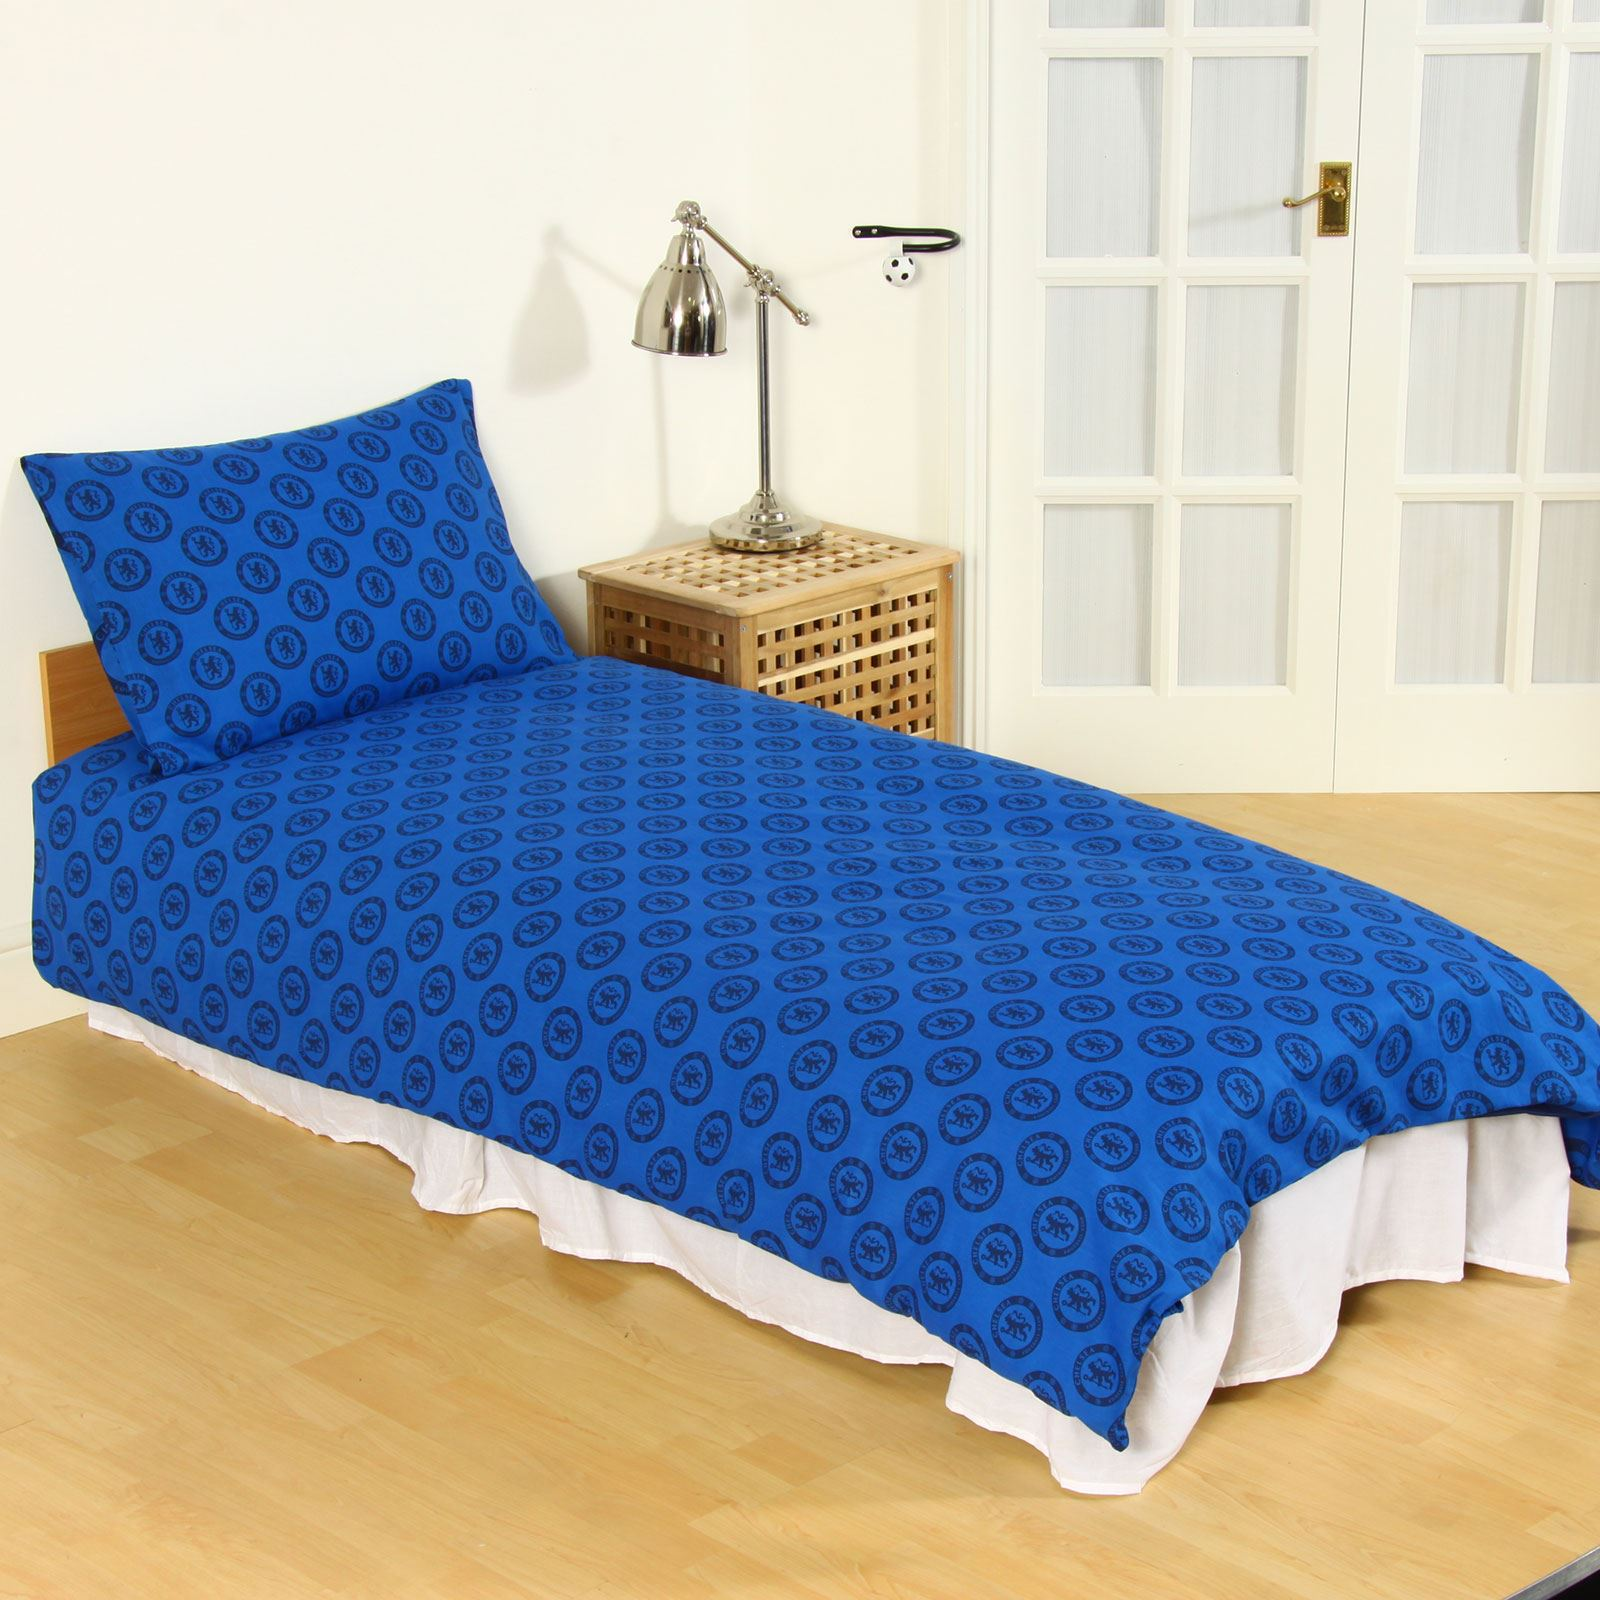 Chelsea Bedroom Chelsea Bedroom Bedside Extension For Bed: CHELSEA FC SINGLE AND DOUBLE DUVET COVER SETS BEDDING